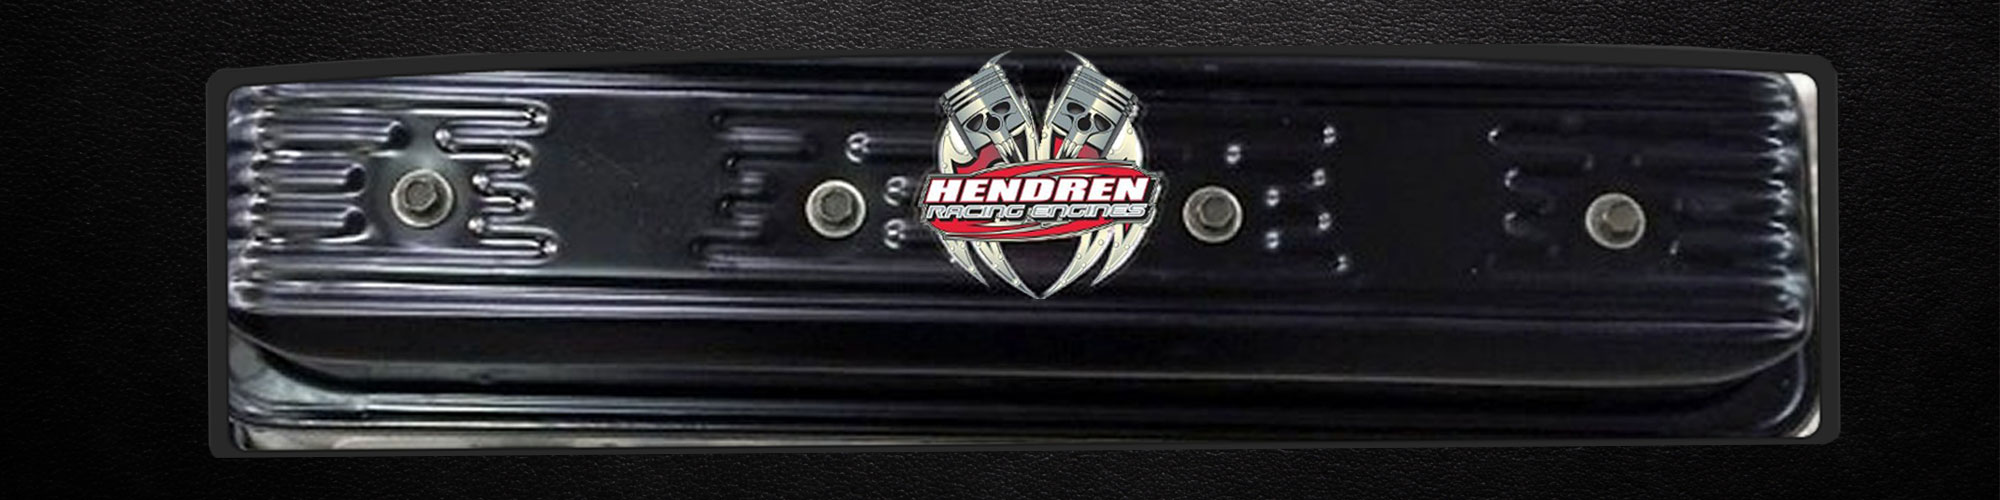 Hendren Racing Engines